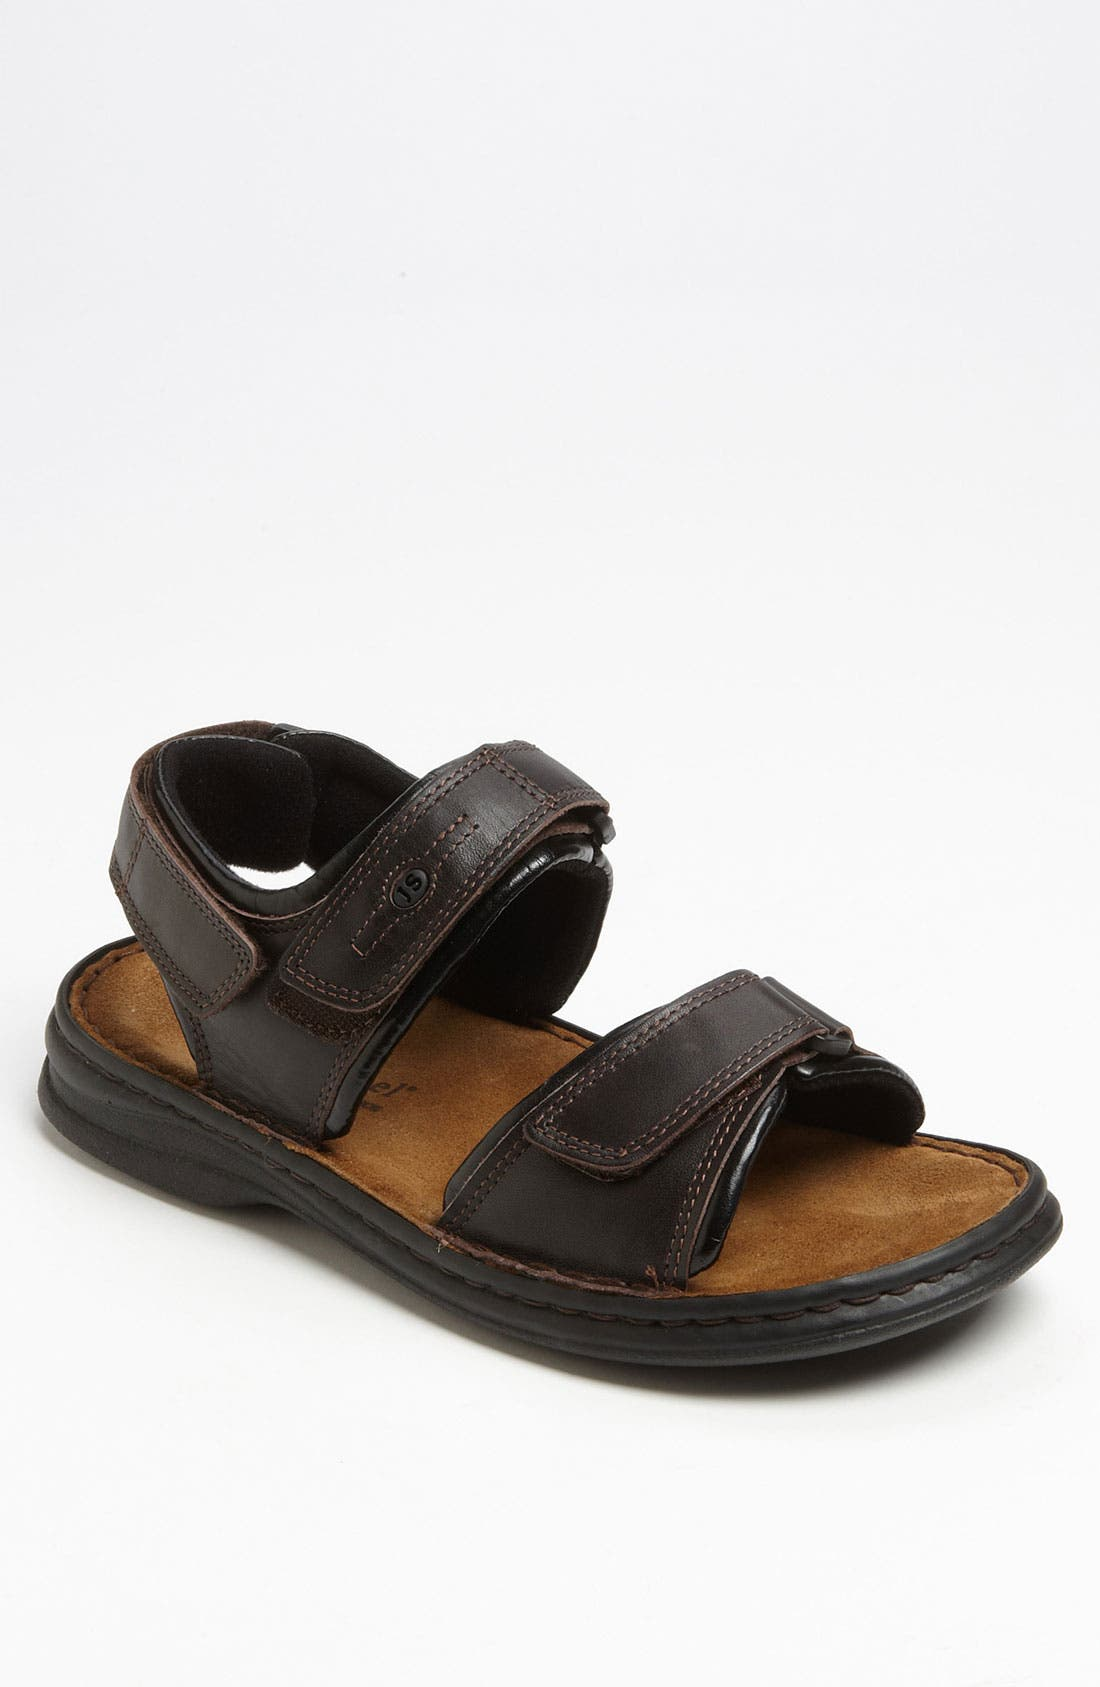 'Rafe' Sandal,                             Main thumbnail 1, color,                             Dakota Moro/Black